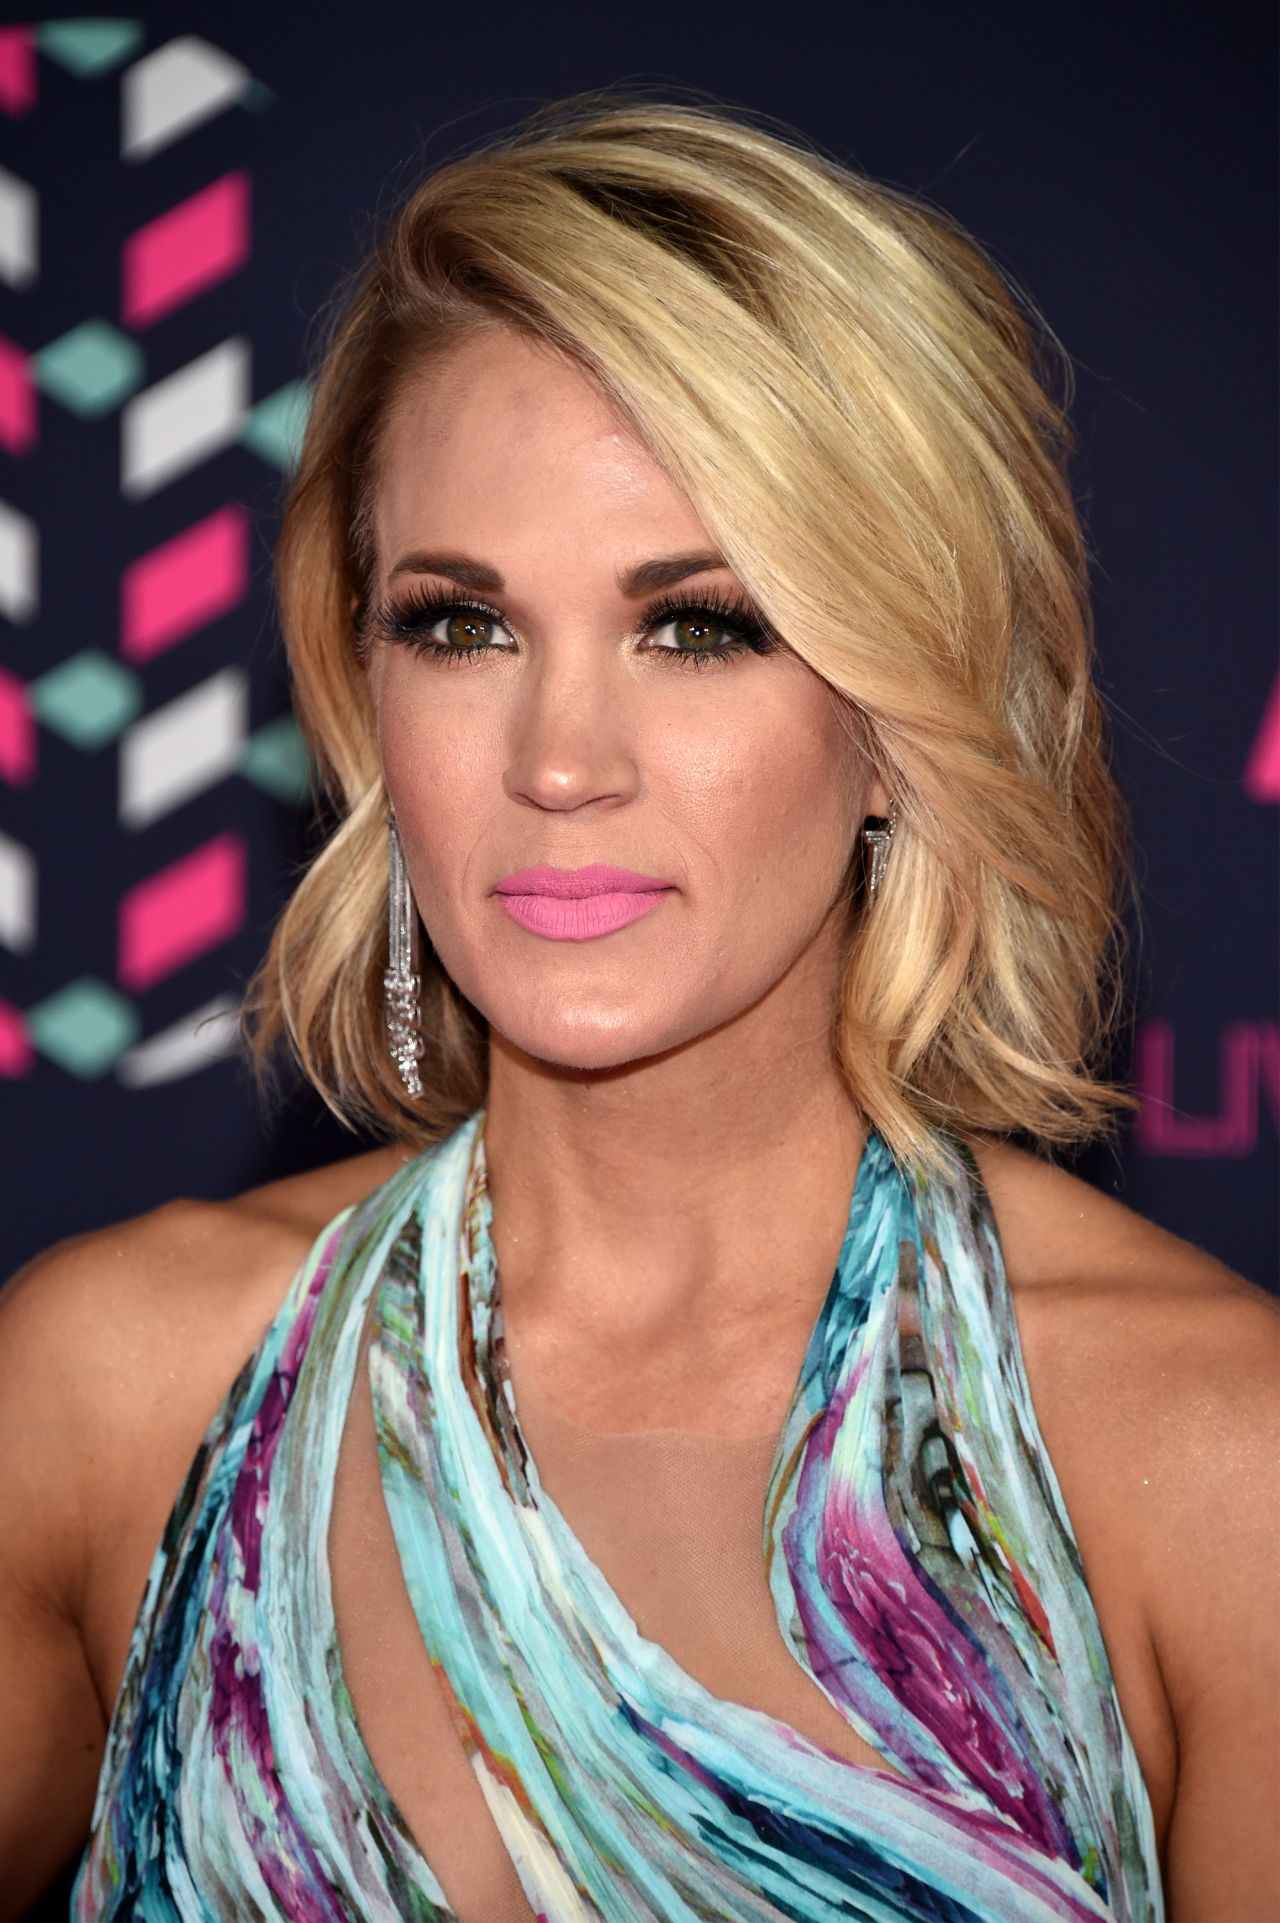 carrie underwood - photo #14